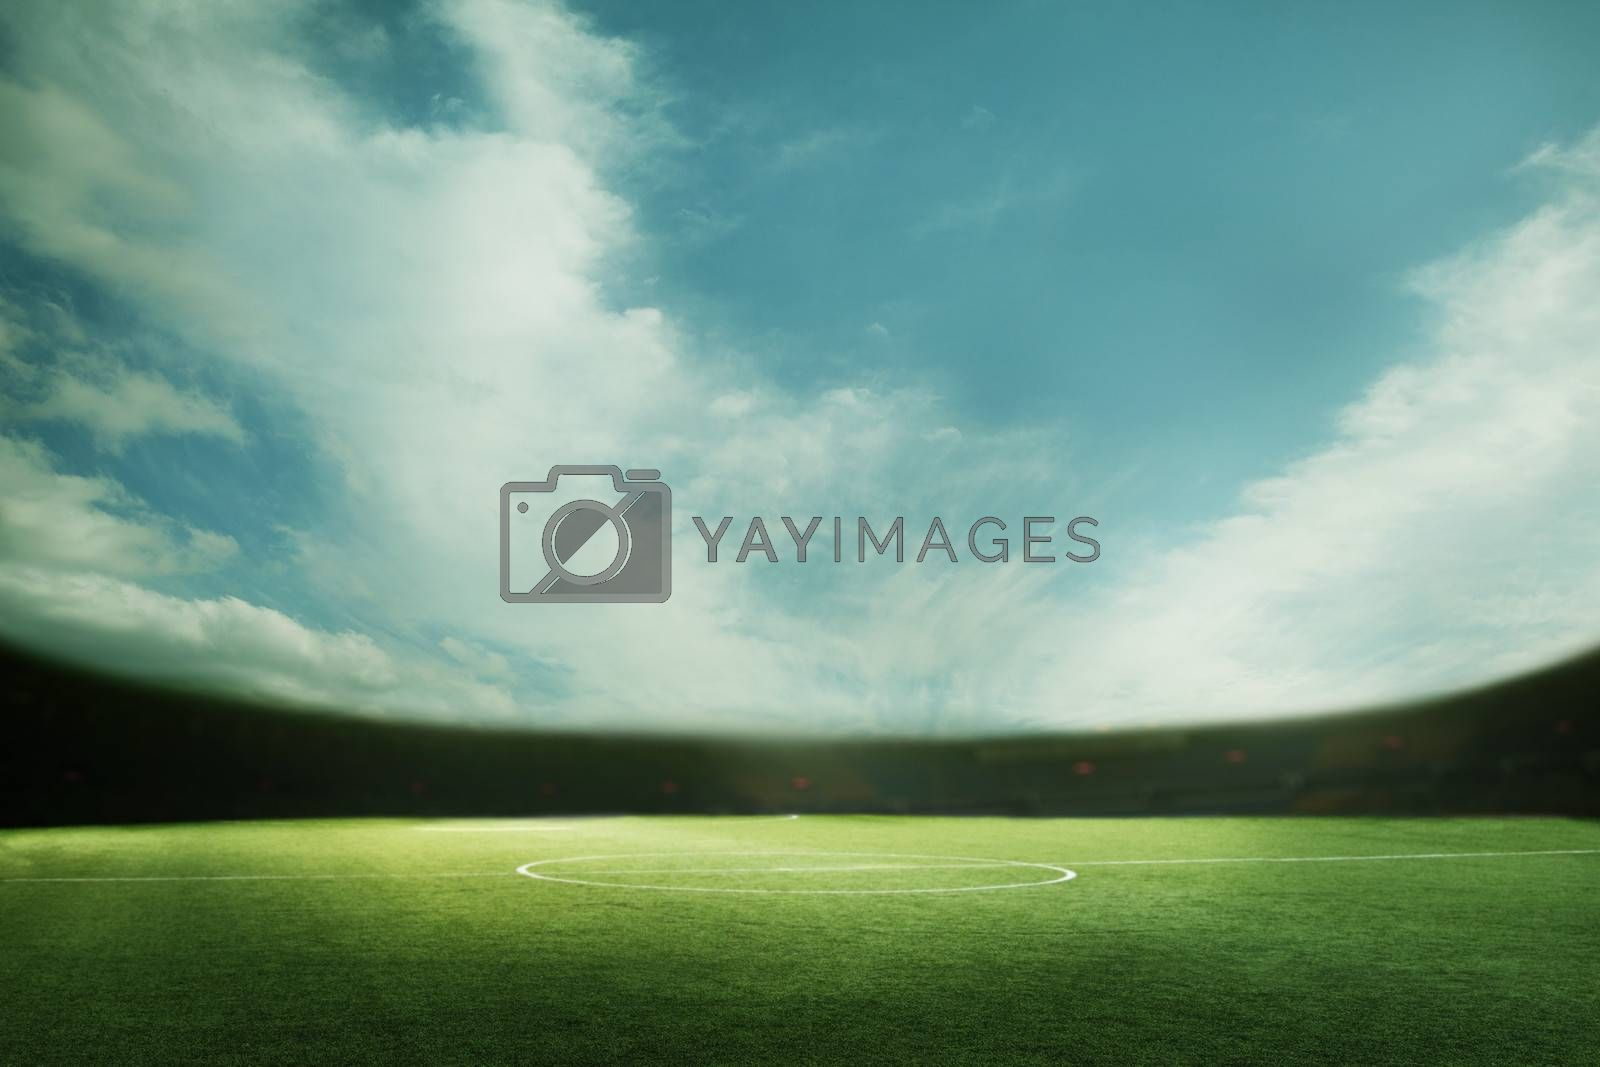 Digital coposit of soccer field and blue sky